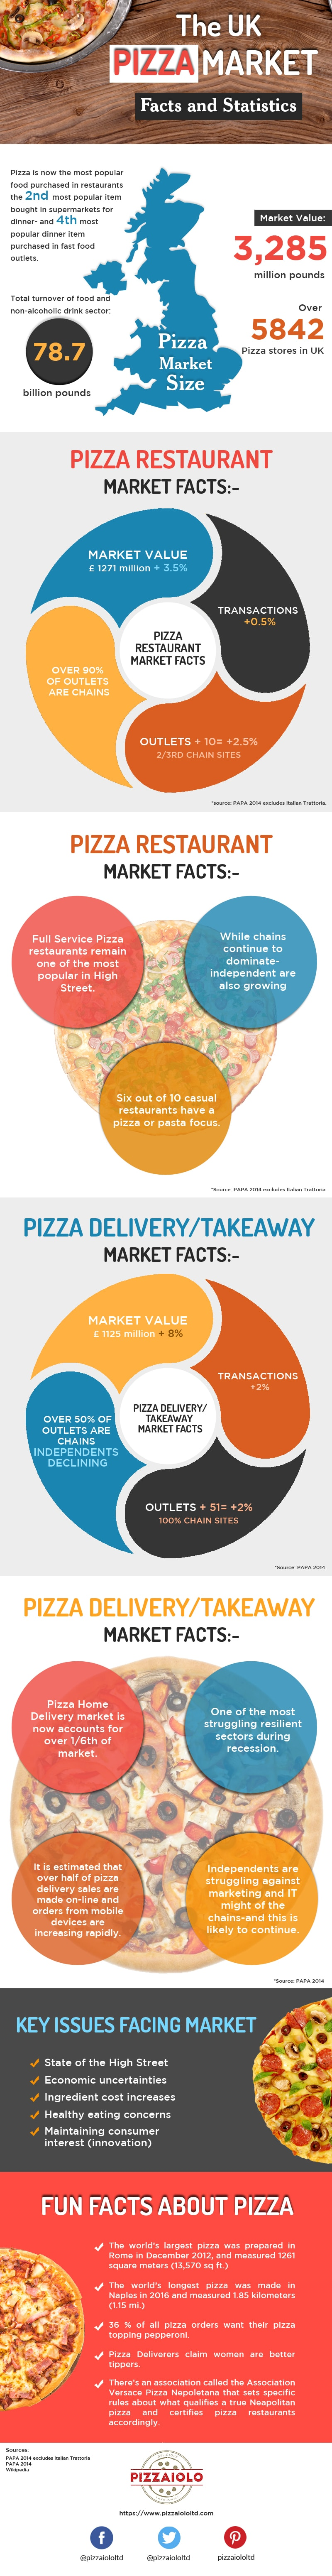 UK Pizza Market, Facts and Statistics [Infographic]